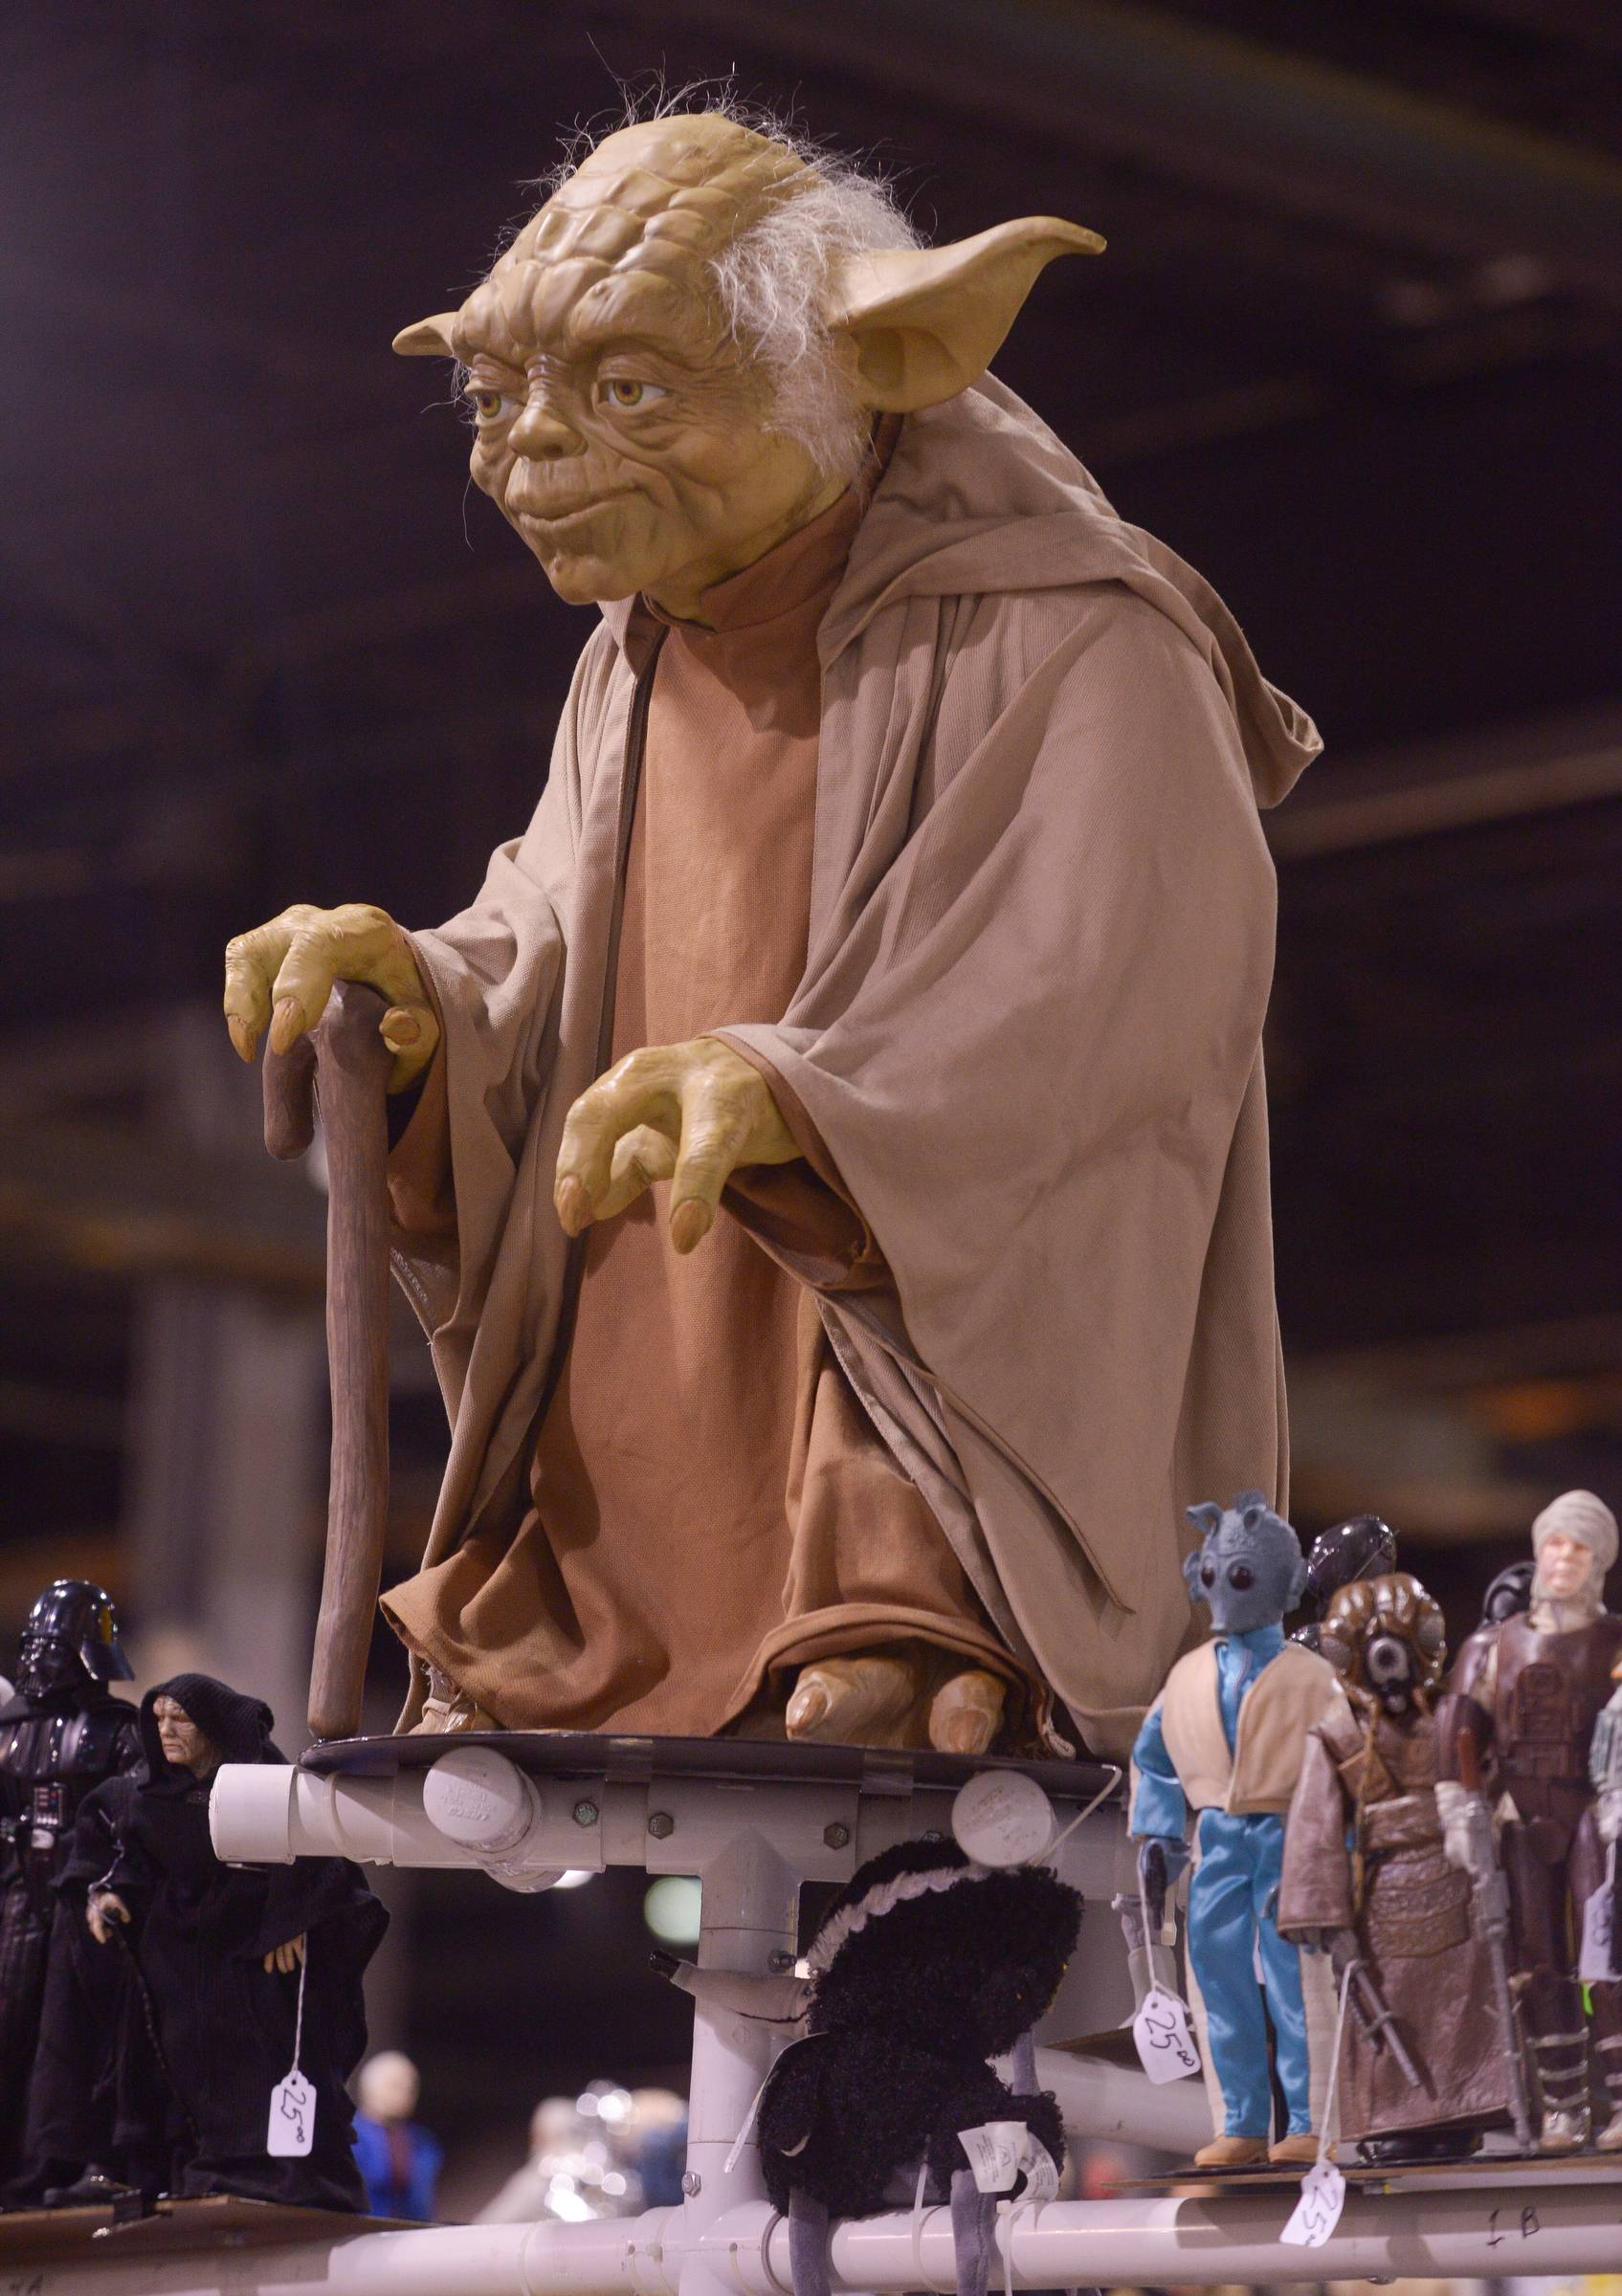 Mark Black/mblack@dailyherald.comFigures large and small of iconic characters such as Yoda from Star Wars were available for sale one many vendor booths at the Comic Con convention at the Donald E. Stephens Convention Center in Rosemont Saturday.